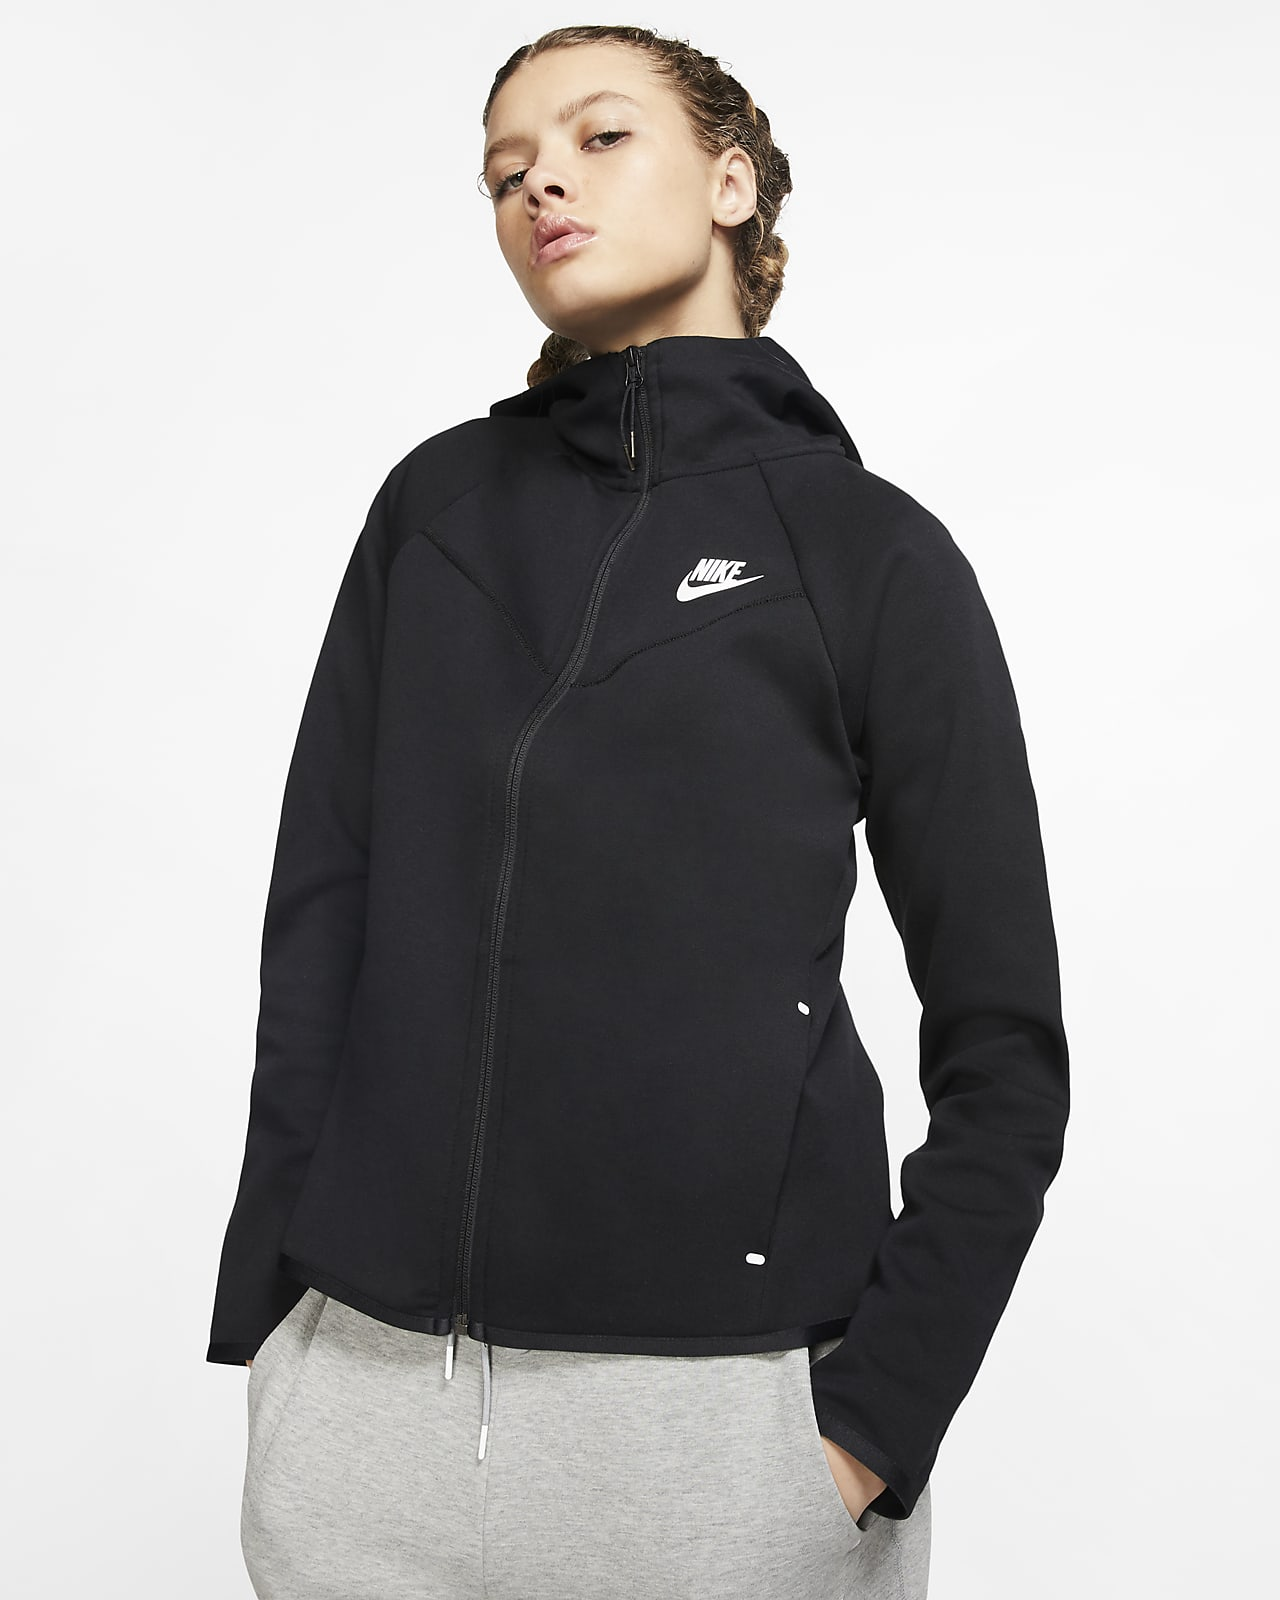 Línea de metal barco Analista  Felpa con cappuccio e zip a tutta lunghezza Nike Sportswear Windrunner Tech  Fleece - Donna. Nike IT